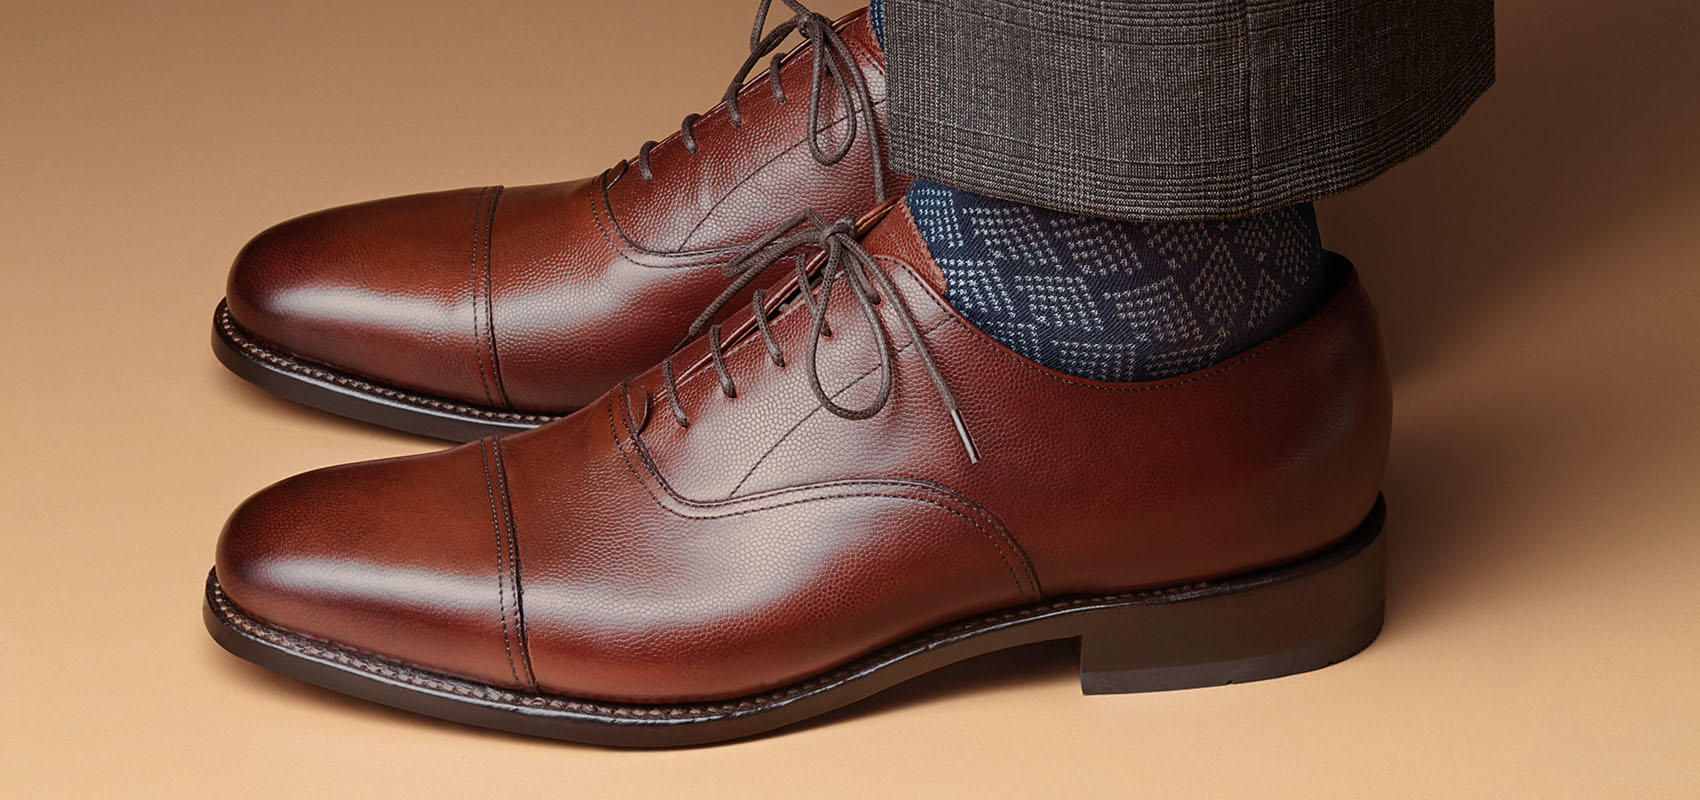 Charles Tyrwhitt Oxford Shoes